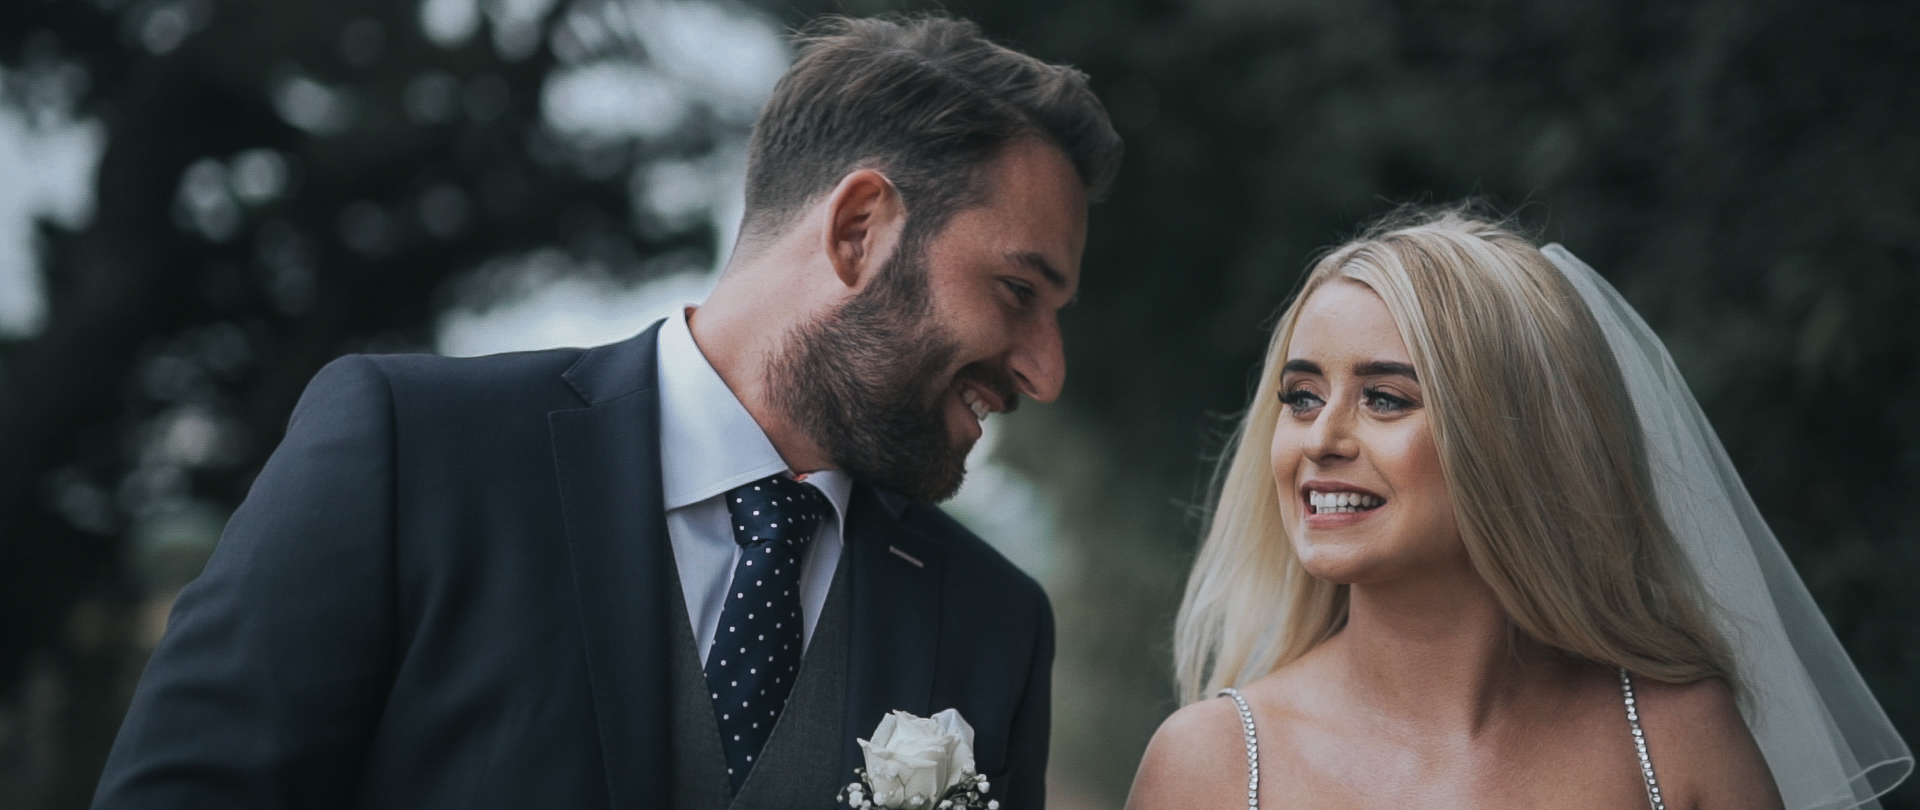 Gaynes Park Wedding Video - Philip Smith Visuals